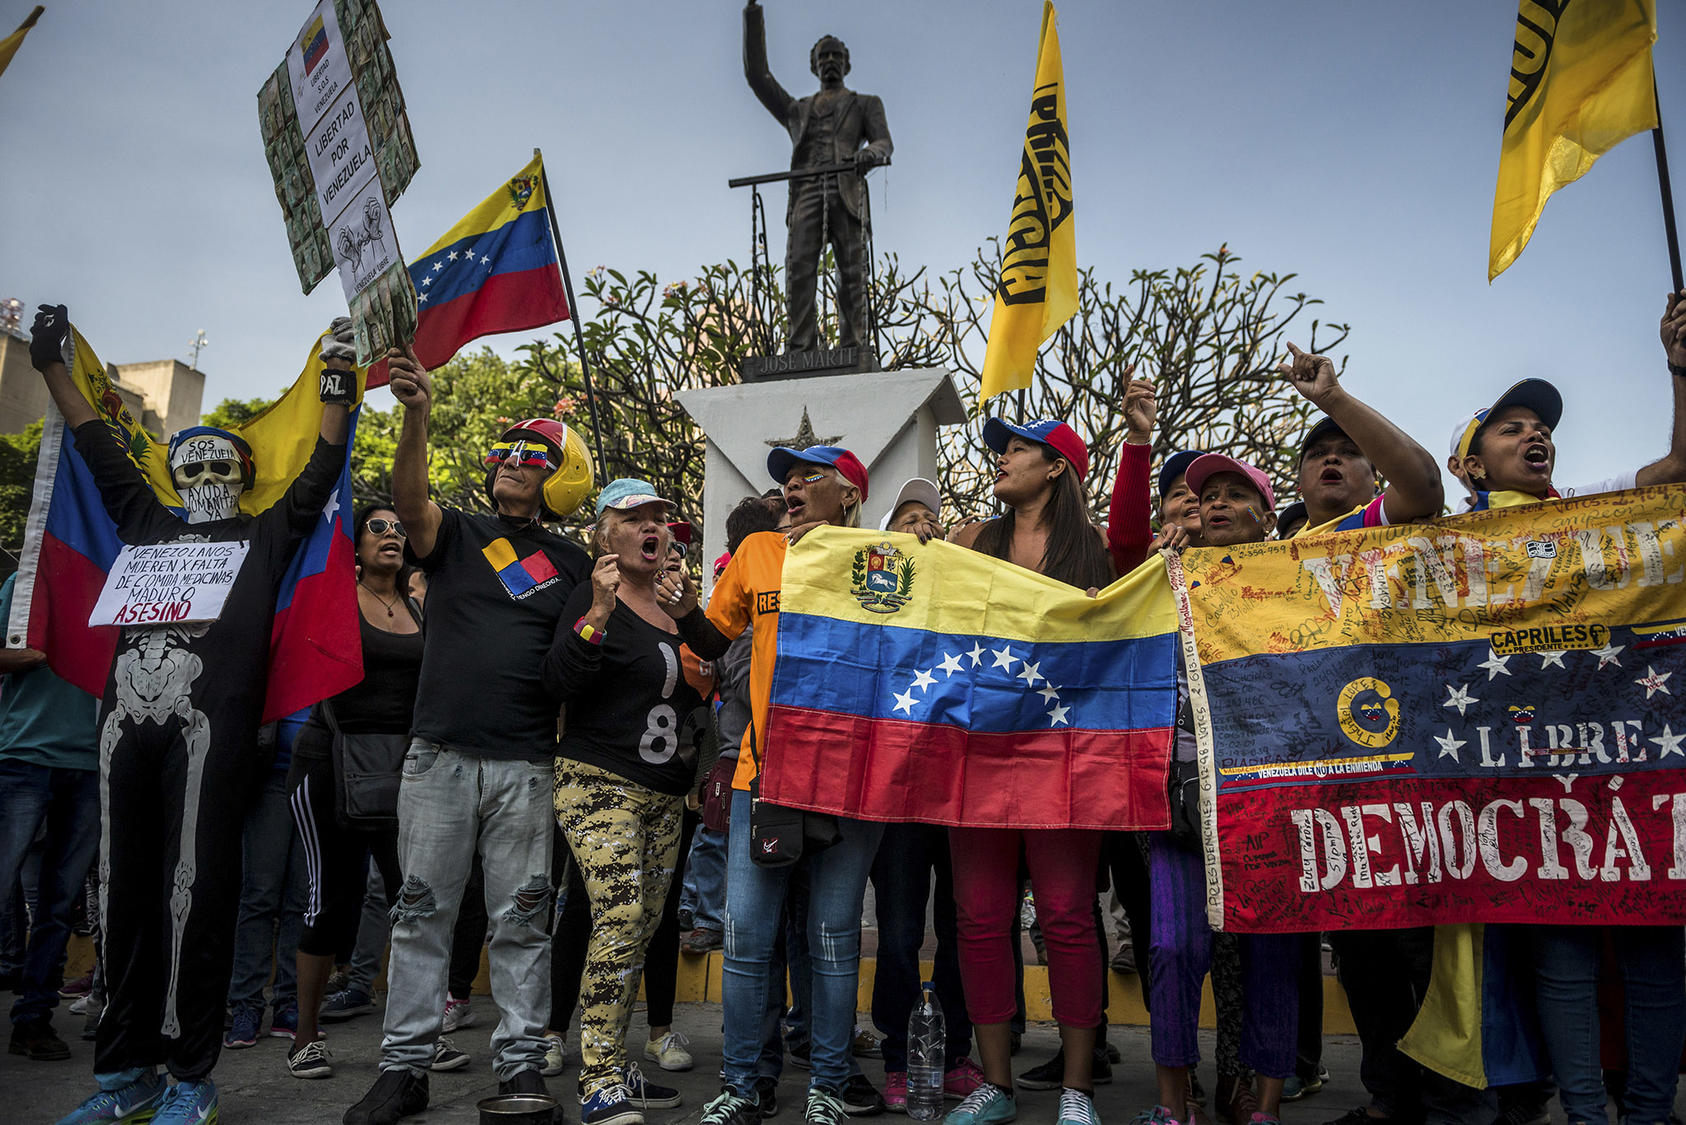 Demonstrators marching against the authoritarian rule of President Nicolás Maduro in Caracas, Venezuela, Feb. 2, 2019. ((Meridith Kohut/The New York Times)